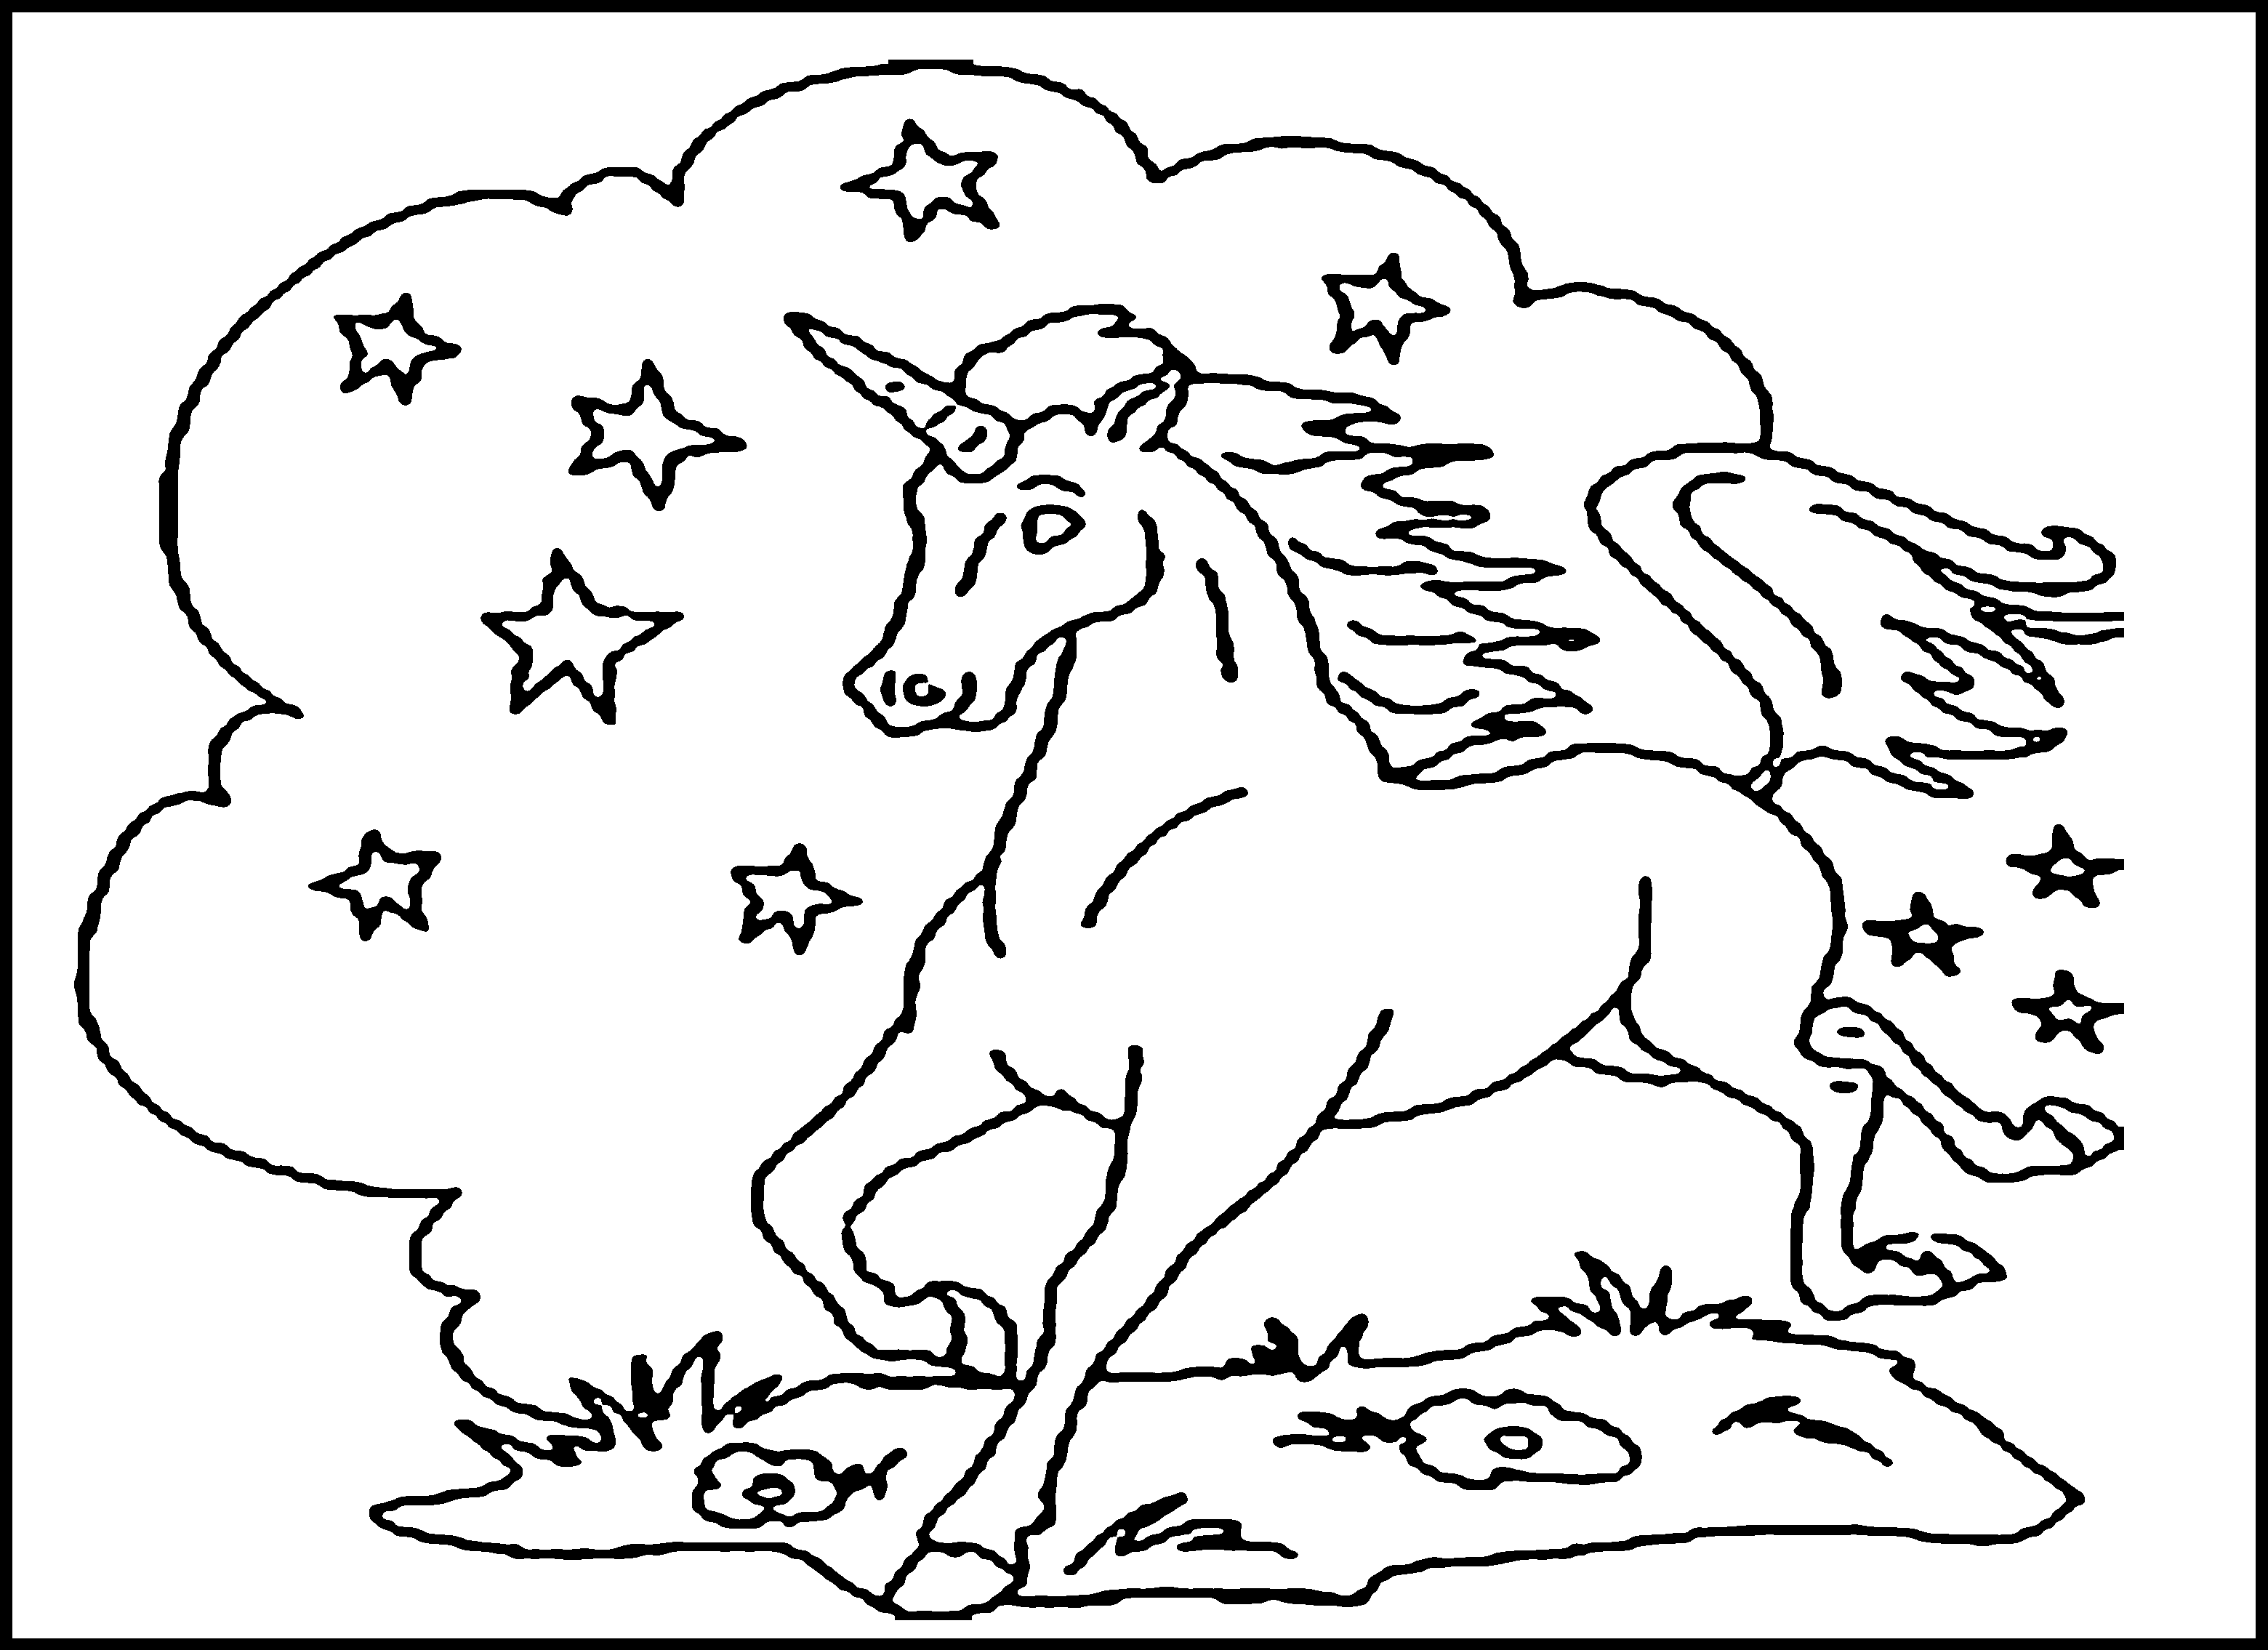 Coloring Pages Unicorn Coloring Pages To Print free printable unicorn coloring pages for kids pages